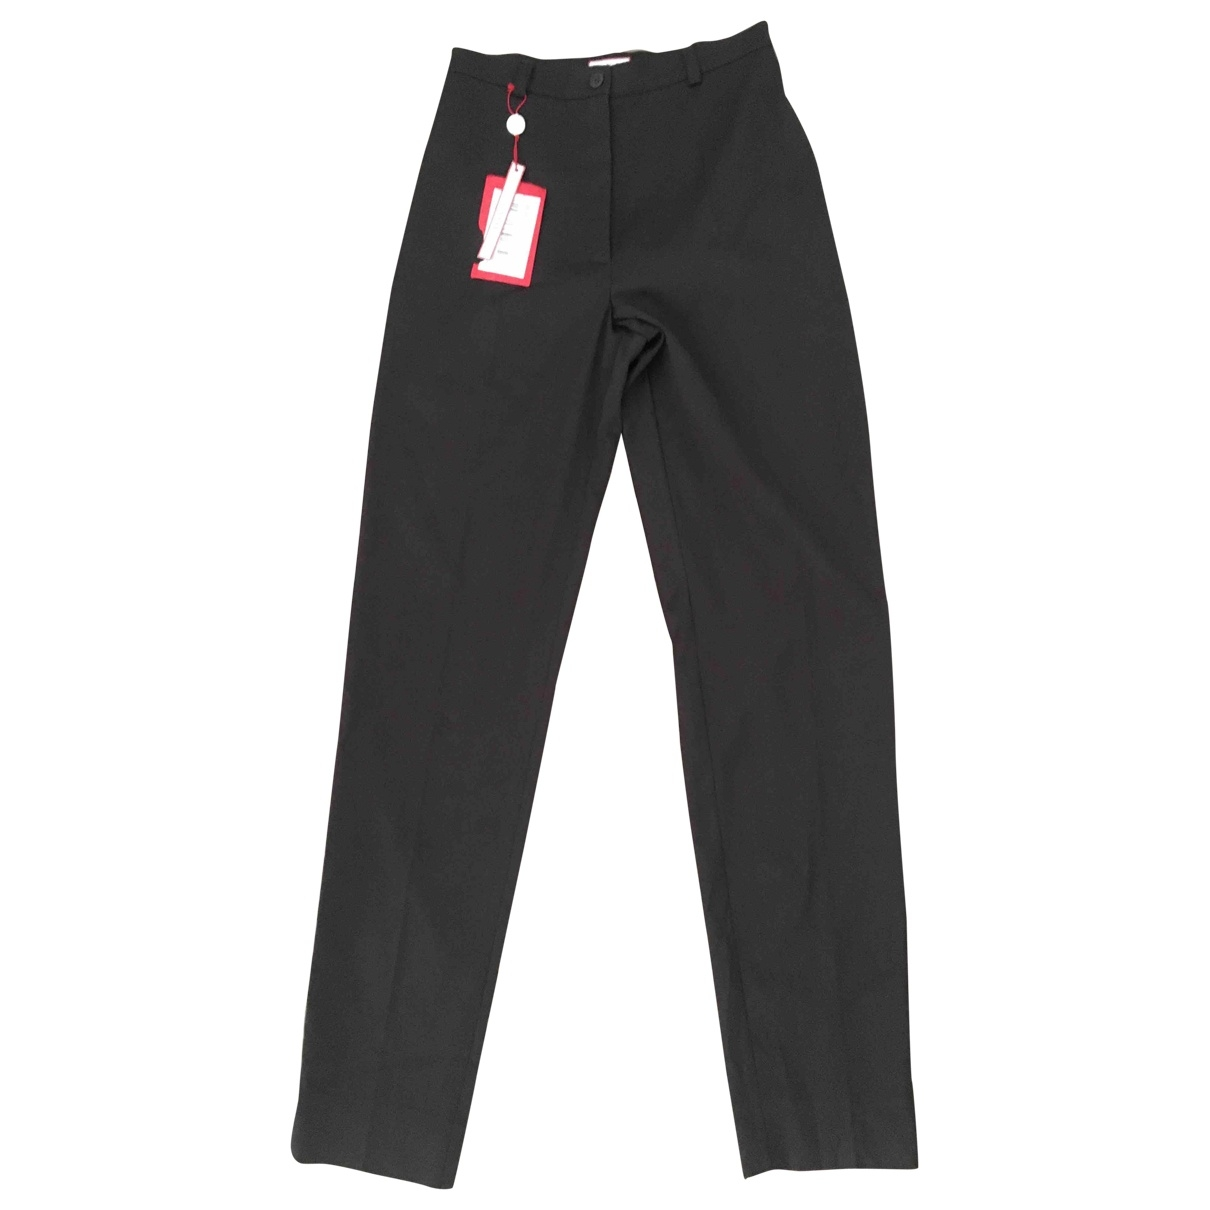 Max & Co \N Brown Trousers for Women 40 IT